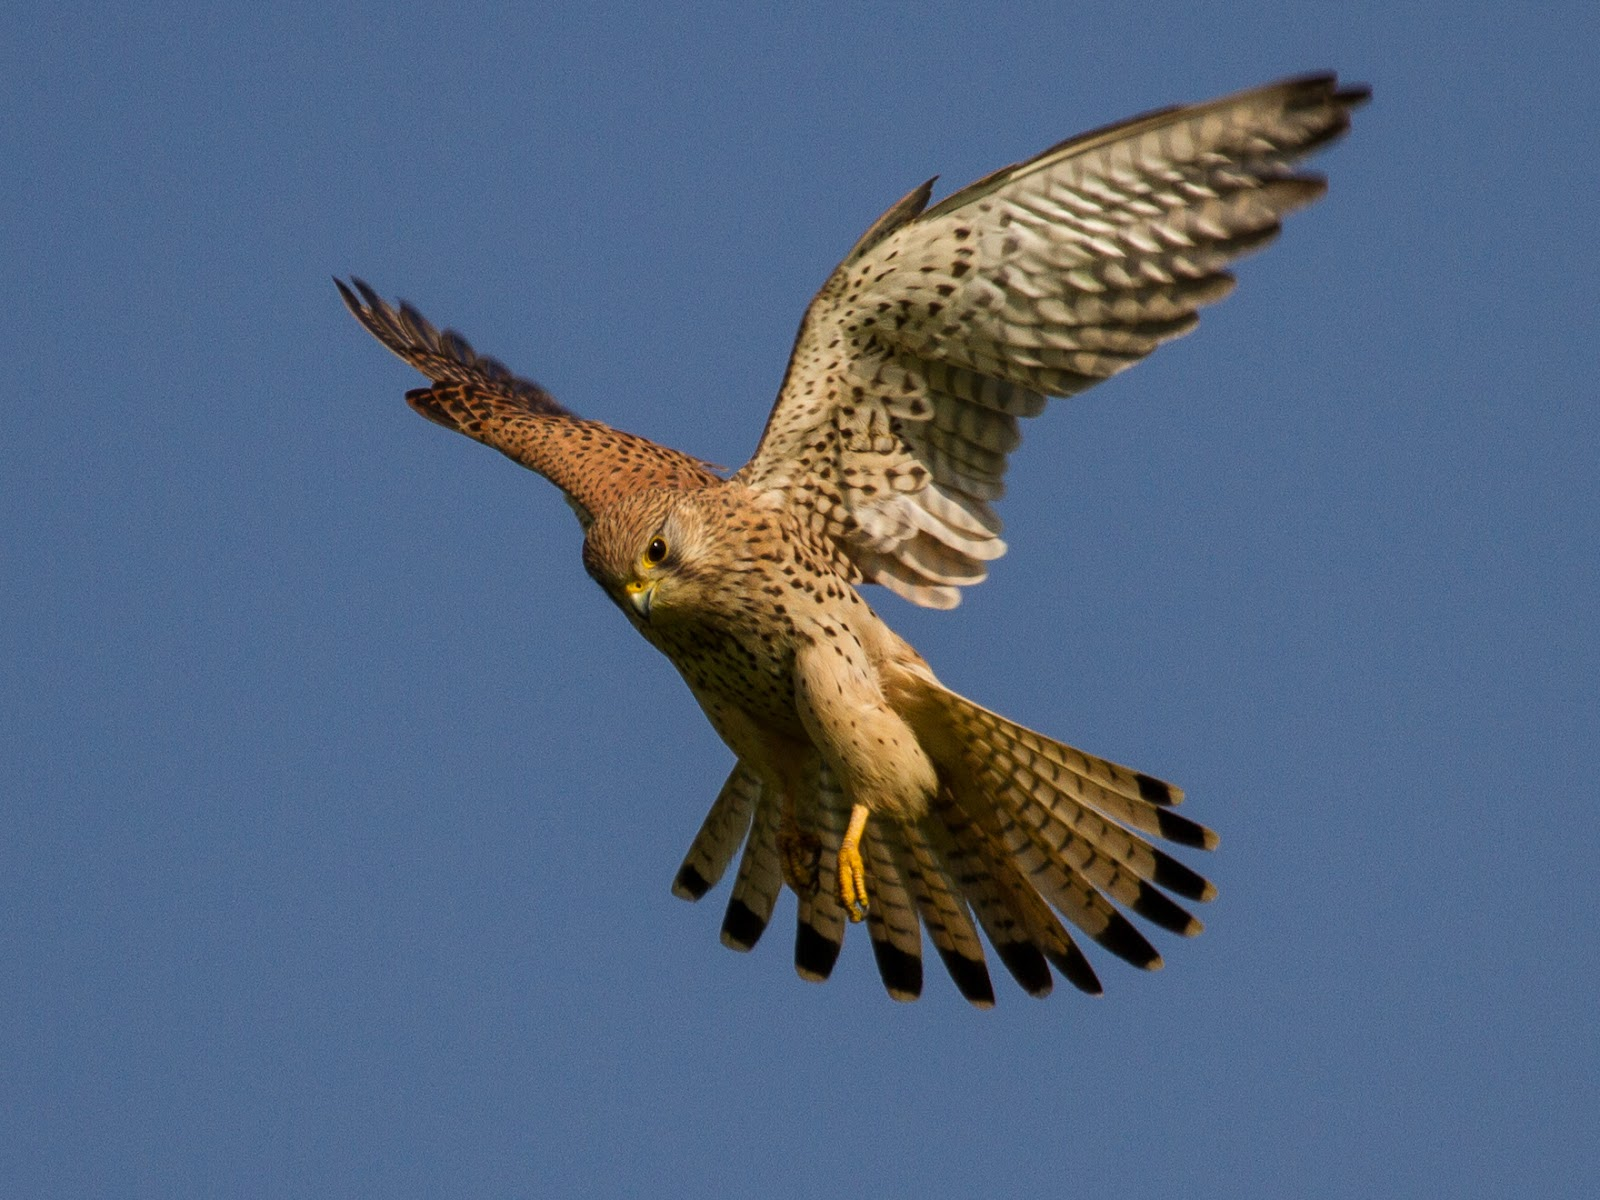 Common_kestrel_in_flight.jpg